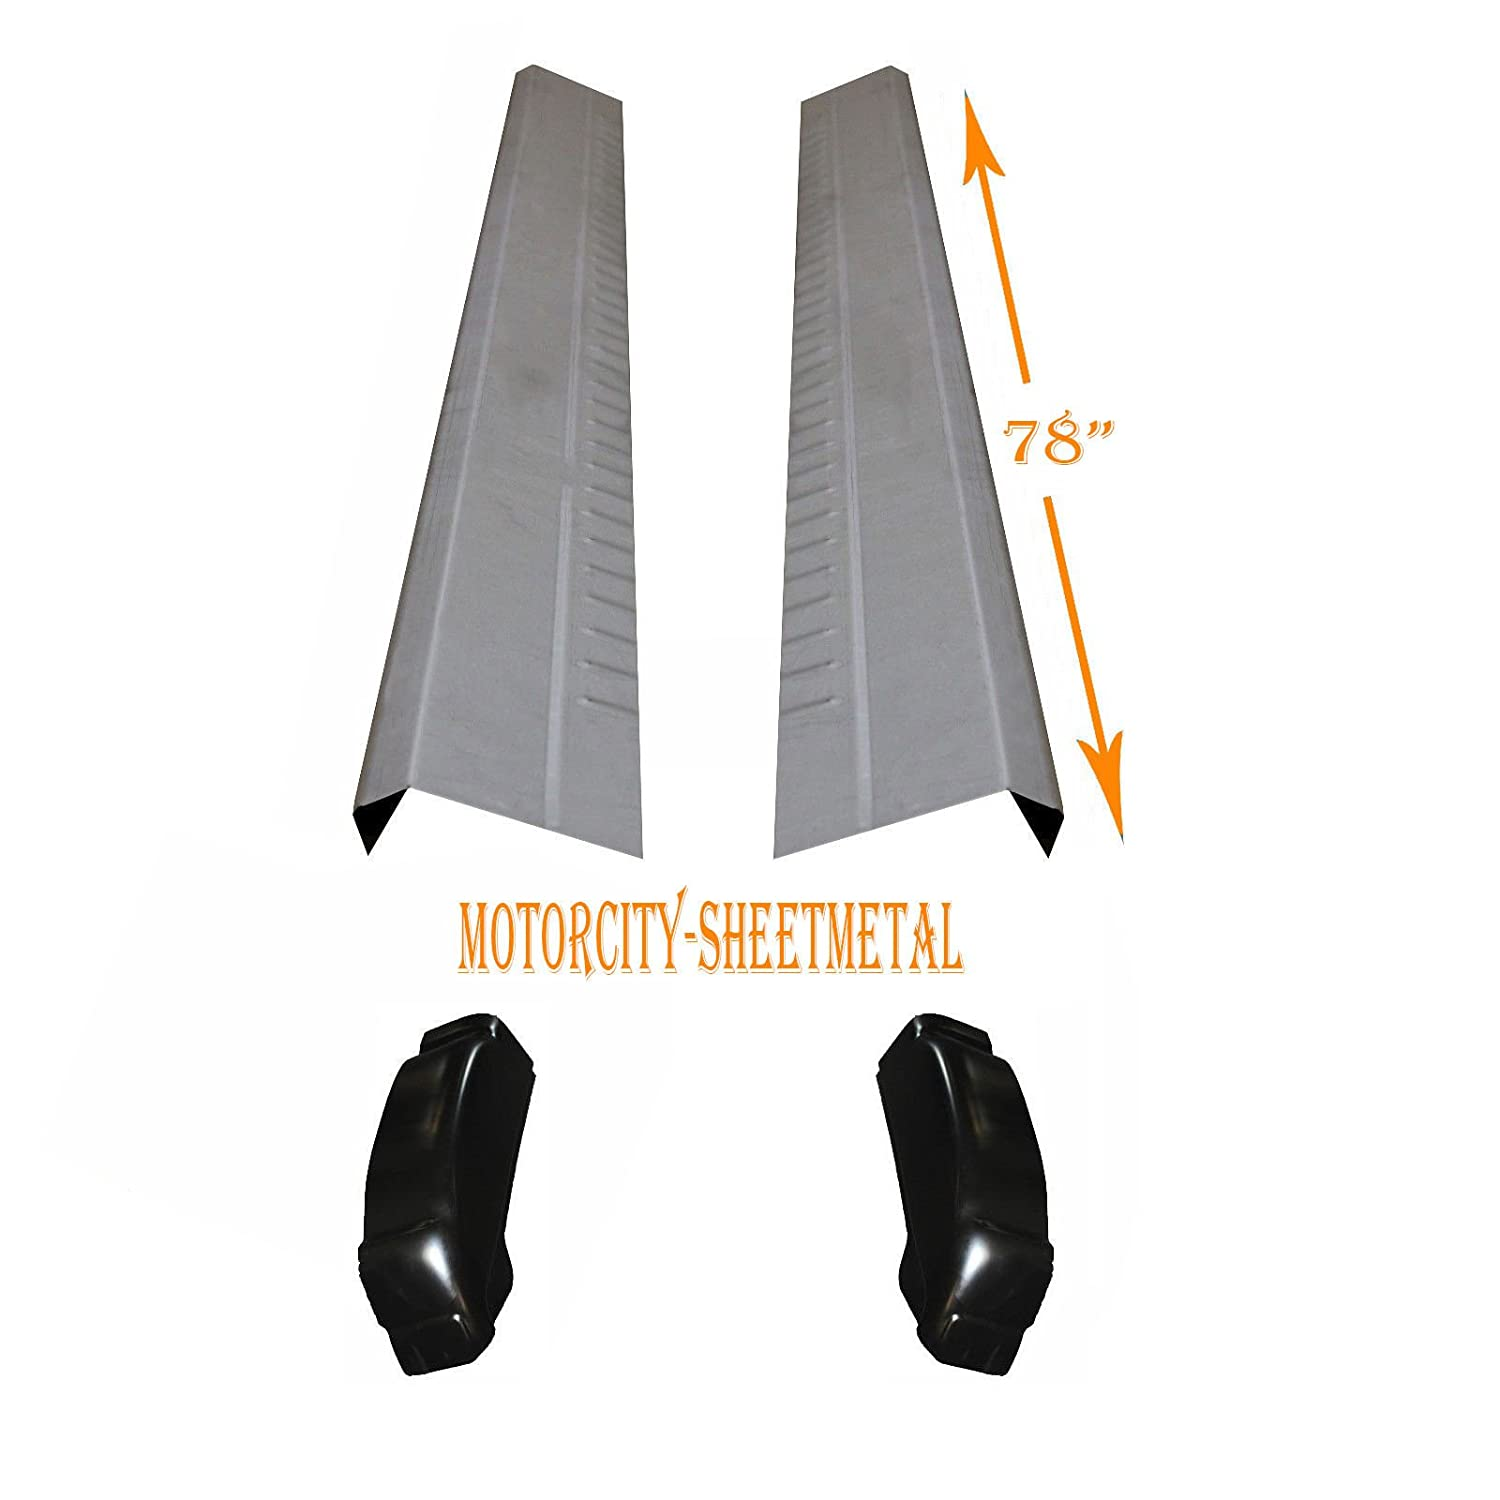 1999-2007 Works With Chevy Silverado 4 Door Extended Cab Outer Rocker Panel And Cab Corner Pair Motor City Sheet Metal